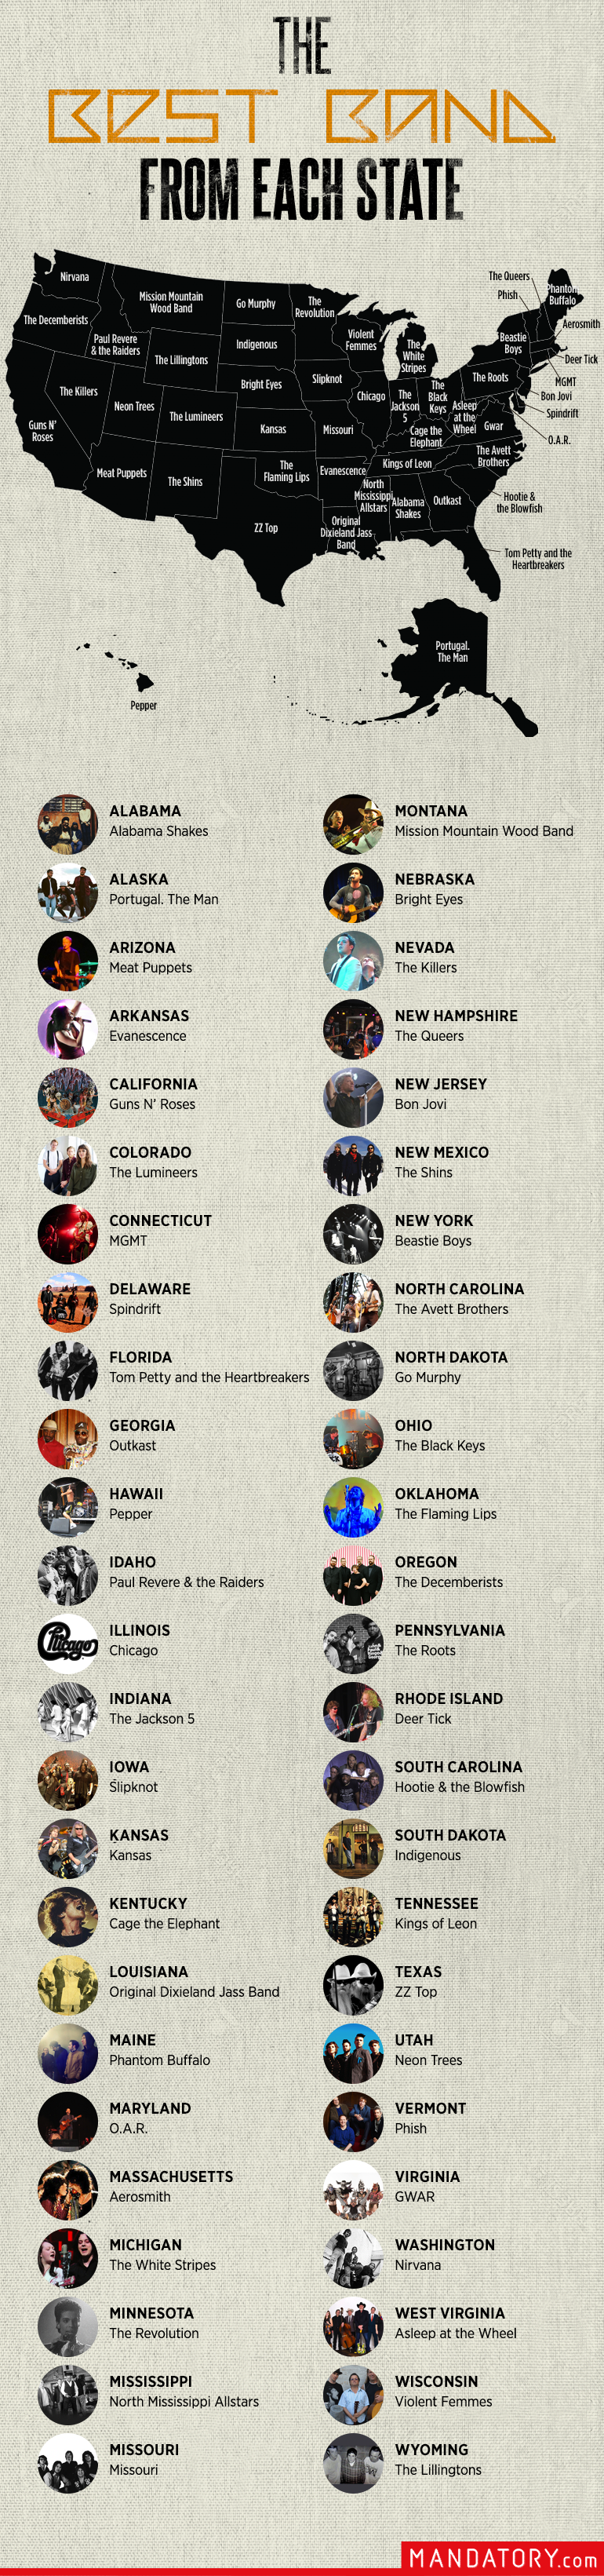 greatest band from each state, best band from every state, best american bands